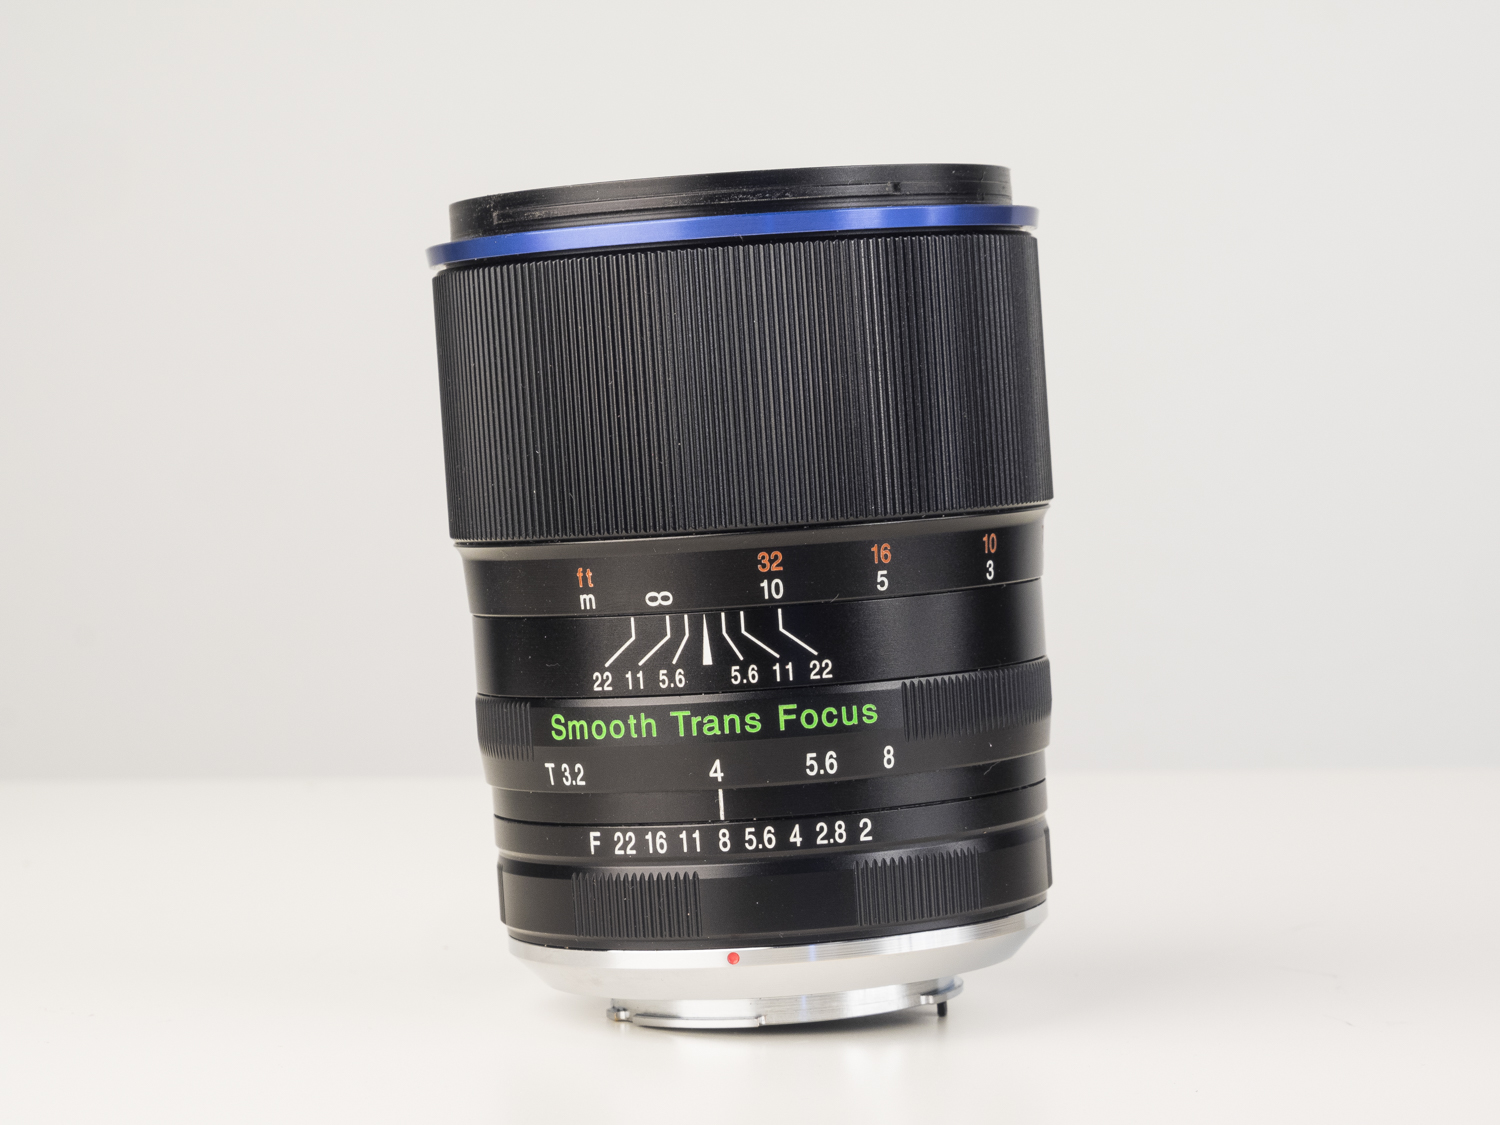 laowa 105mm f2 STF lens product images 03.jpg